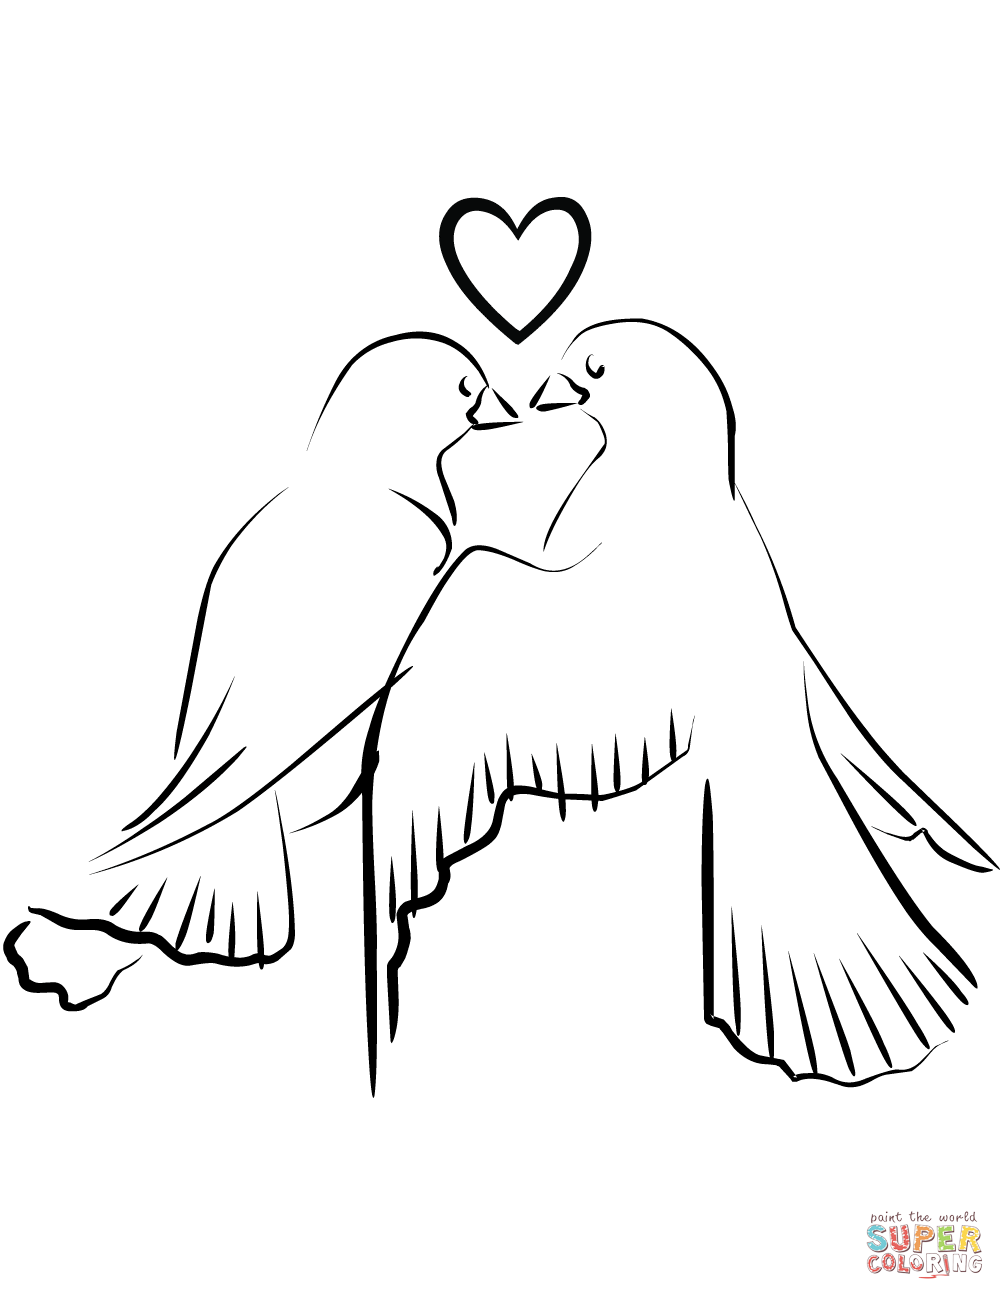 love birds coloring pages love birds coloring page woo jr kids activities love coloring pages birds